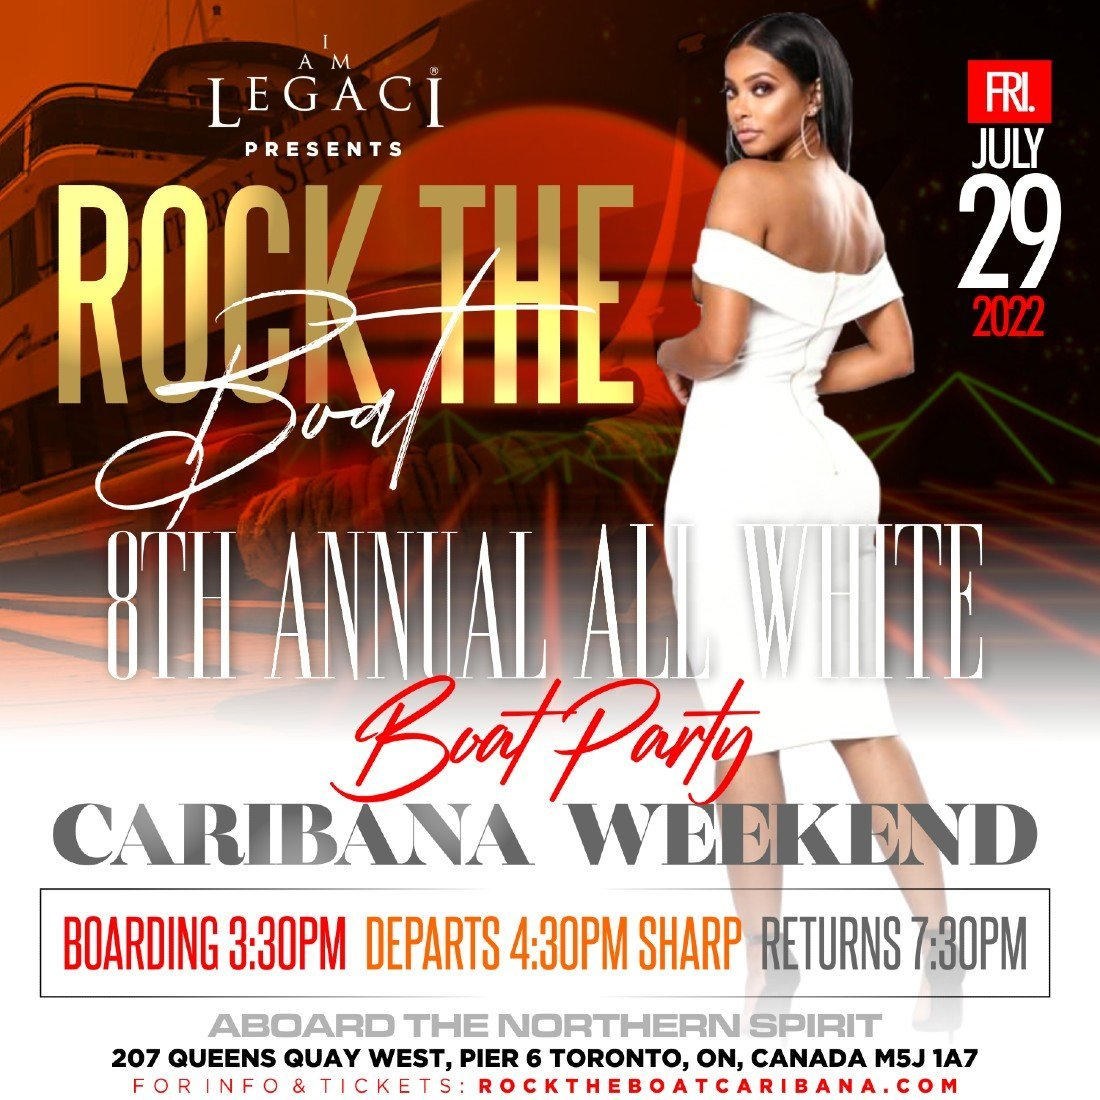 ROCK THE BOAT • 8th ANNUAL ALL WHITE BOAT PARTY • TORONTO CARIBANA 2022, 29 July | Event in Toronto | AllEvents.in